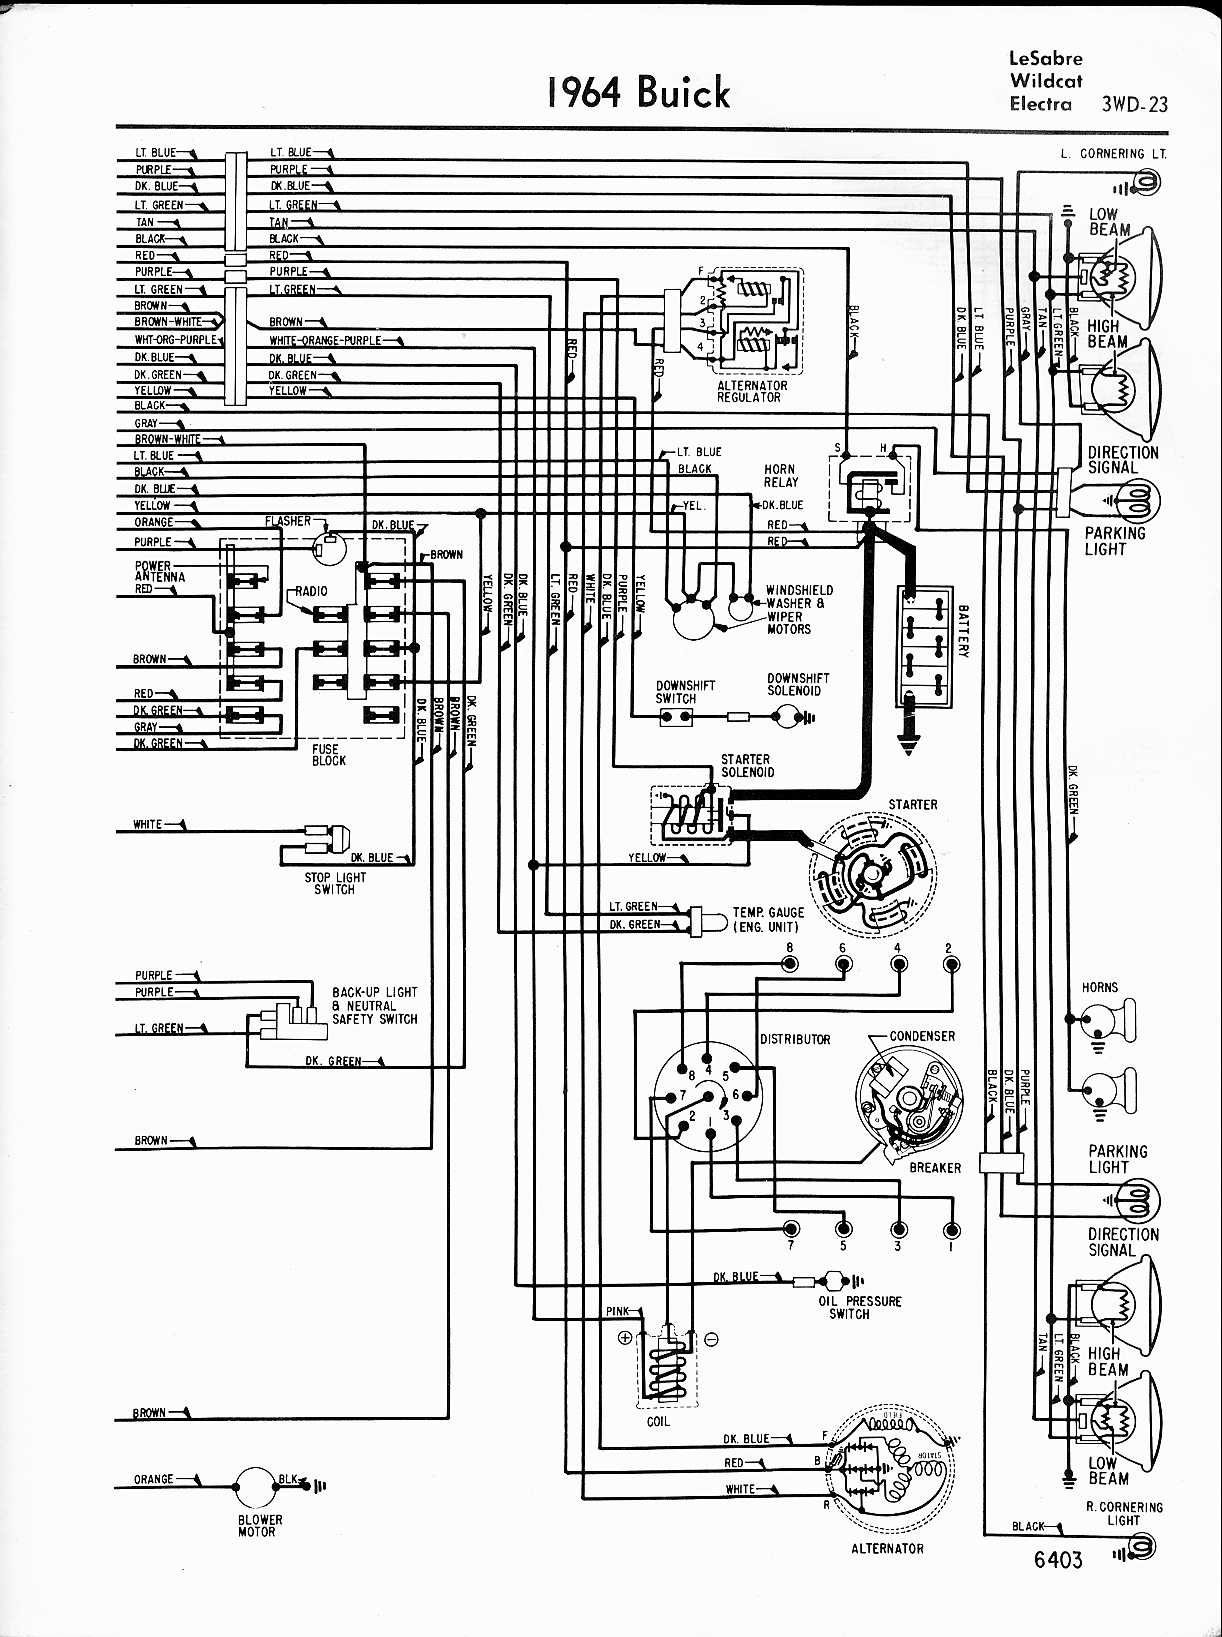 Buick Wiring Diagrams 1957 1965 Winch Relay Diagram 1964 Lesabre Wildcat Electra Right Half